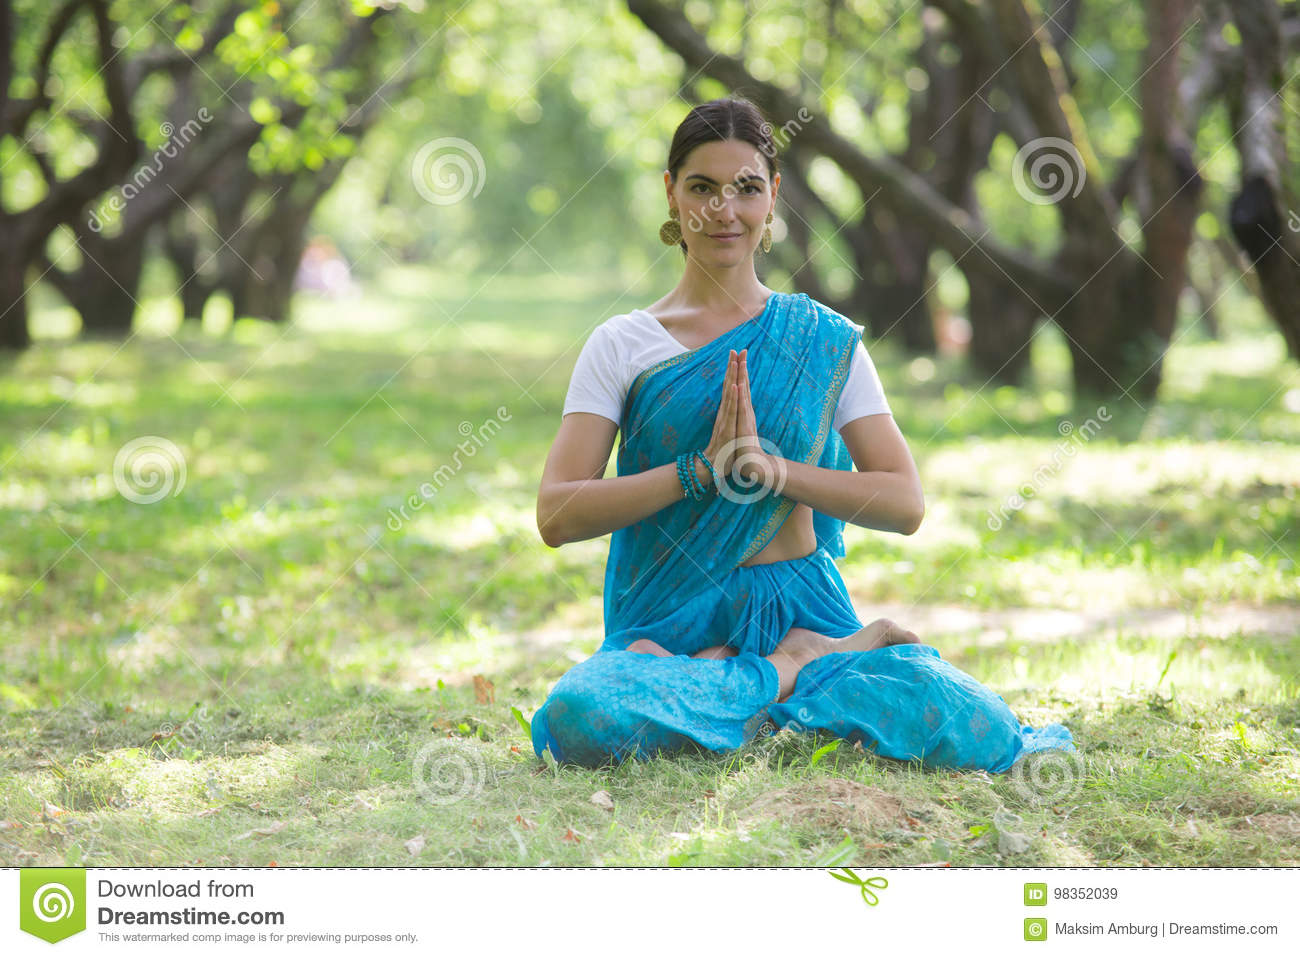 26639c49da Beautiful young woman dressed in a sari praying and meditating in the park  hinduism religion yoga